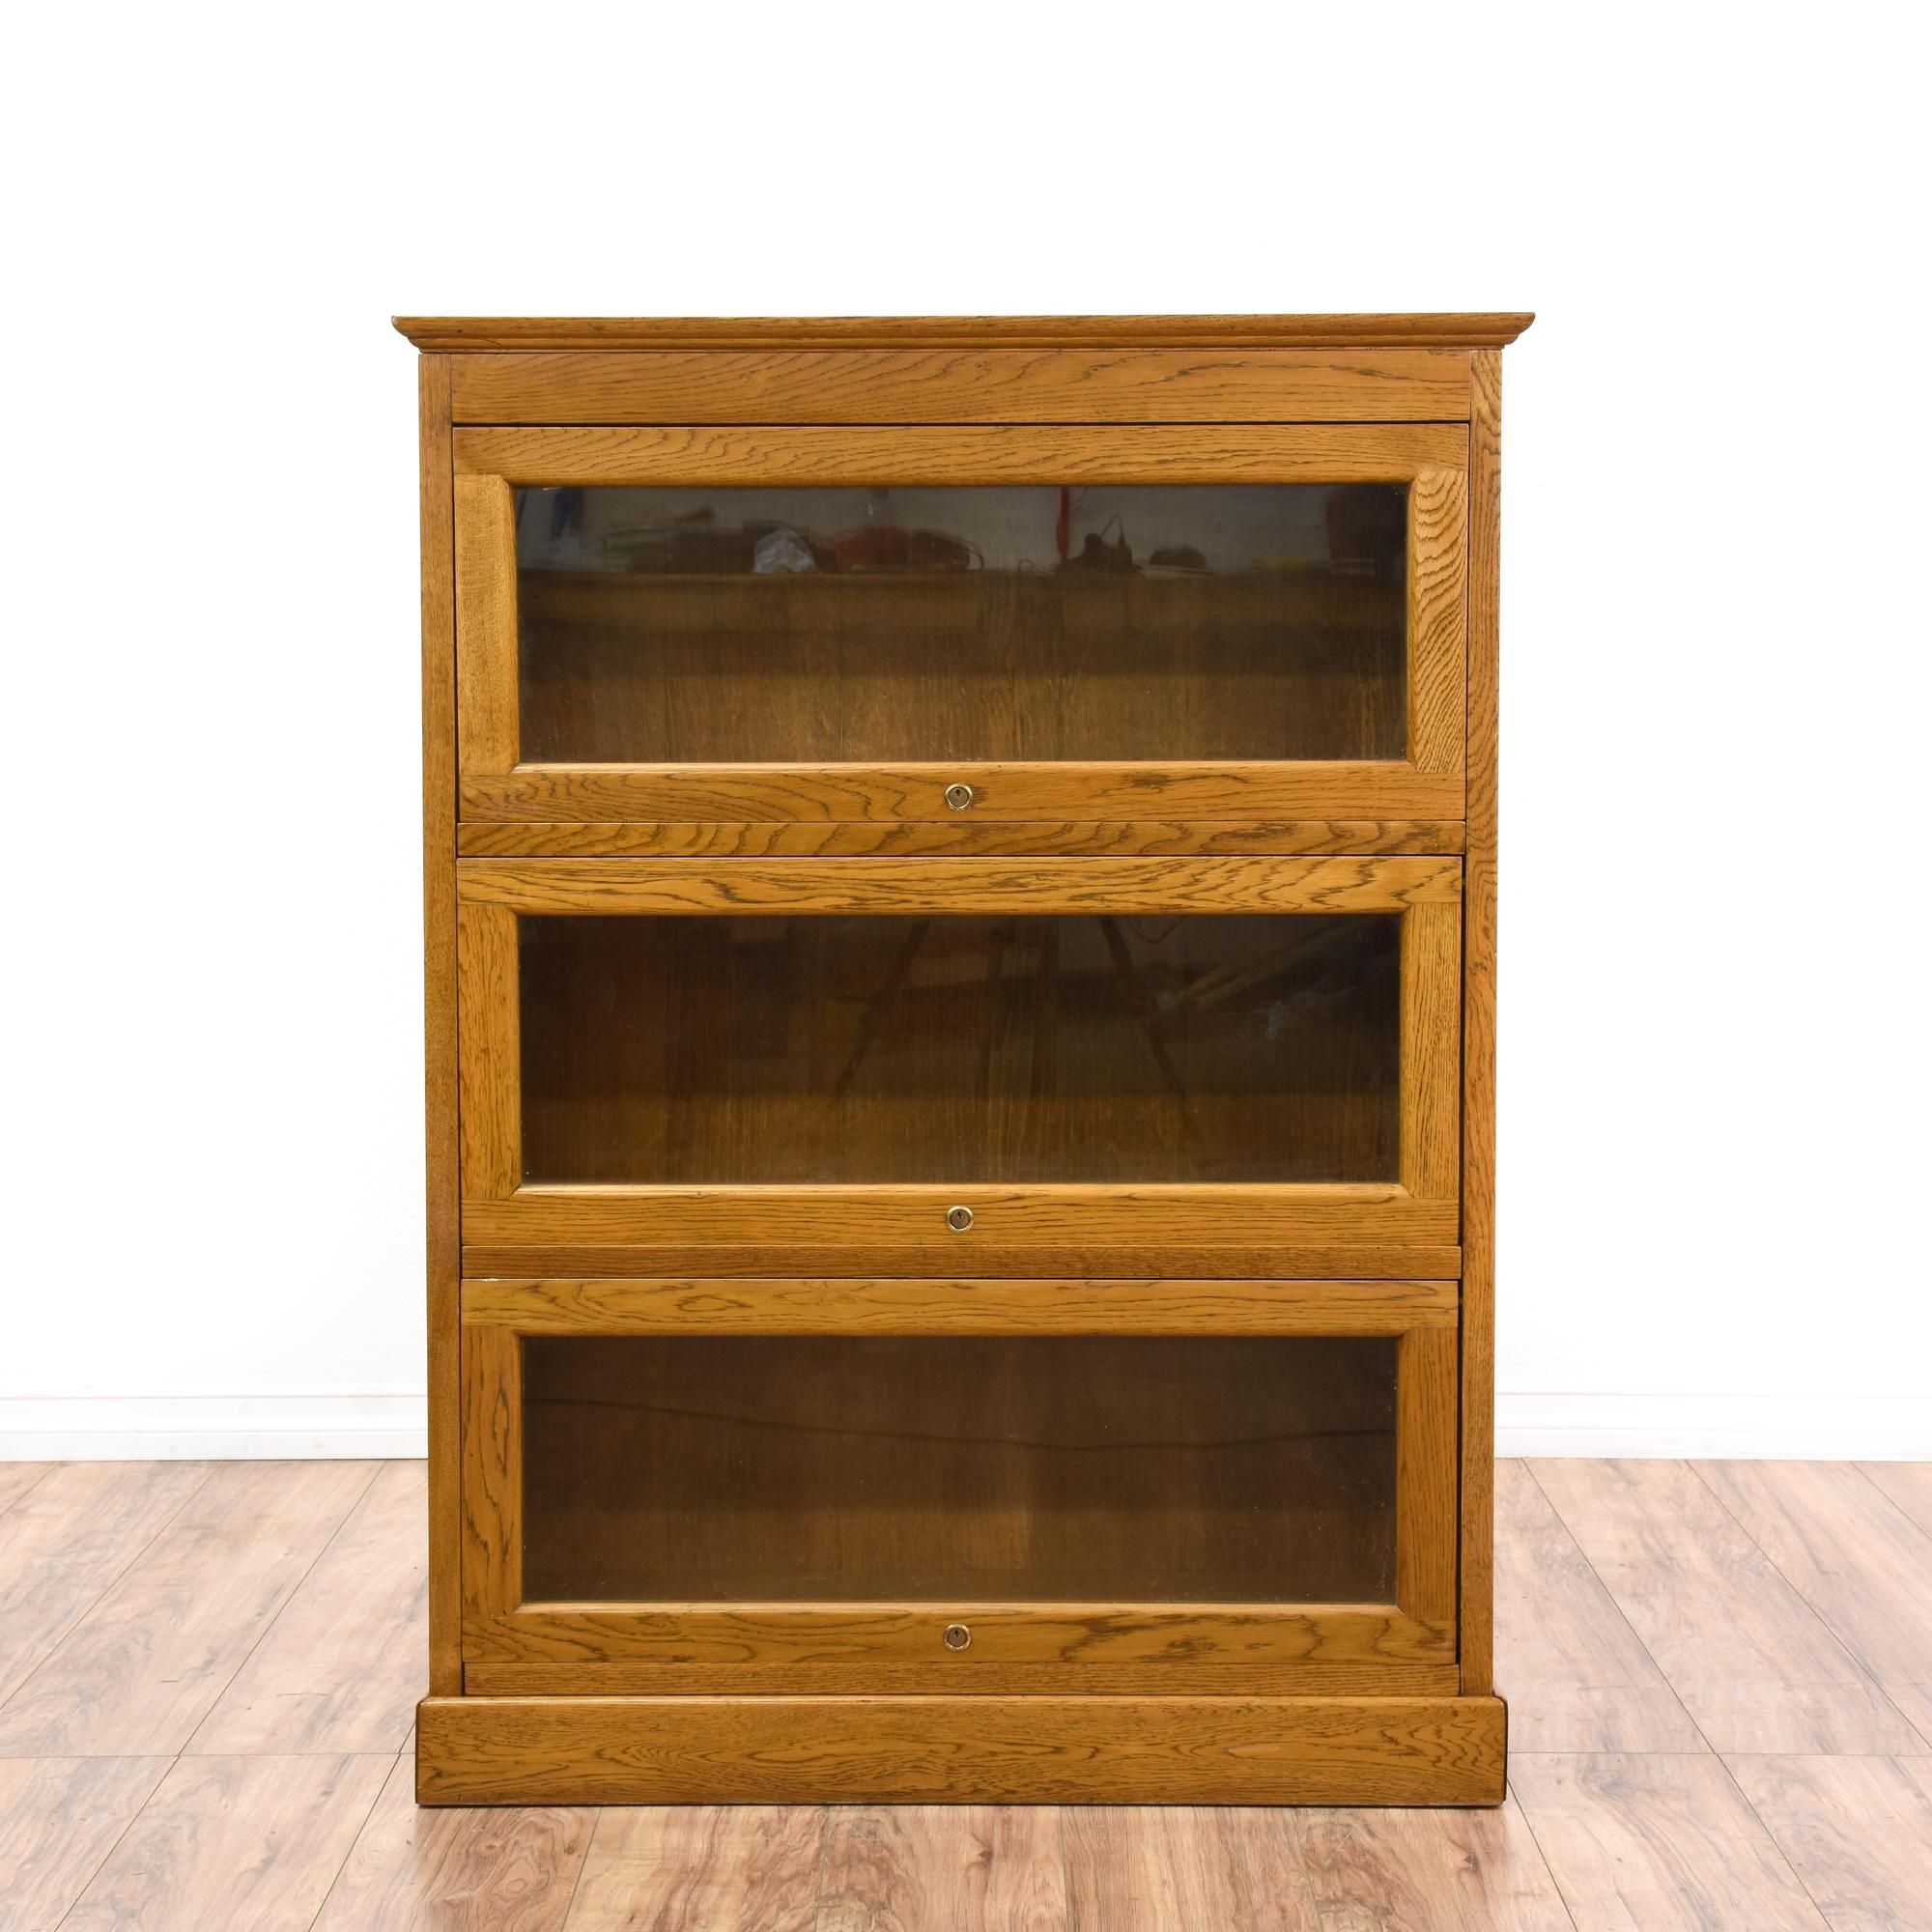 This lawyer s bookcase is featured in a solid wood with a glossy oak